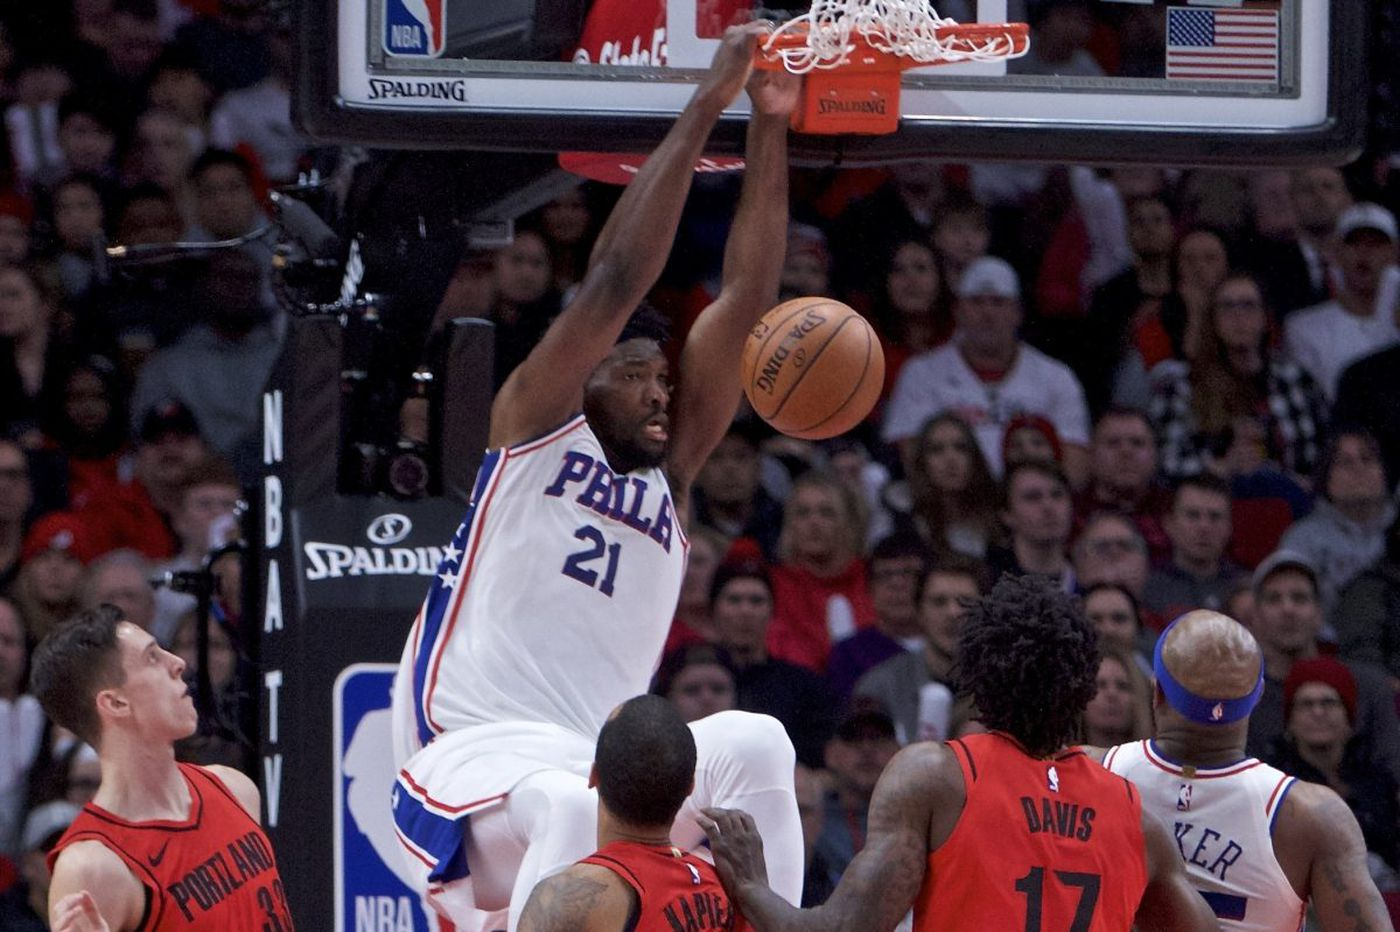 Sixers-Trail Blazers: Joel Embiid and Co. were hot and then cold, and other quick thoughts from a 114-110 loss